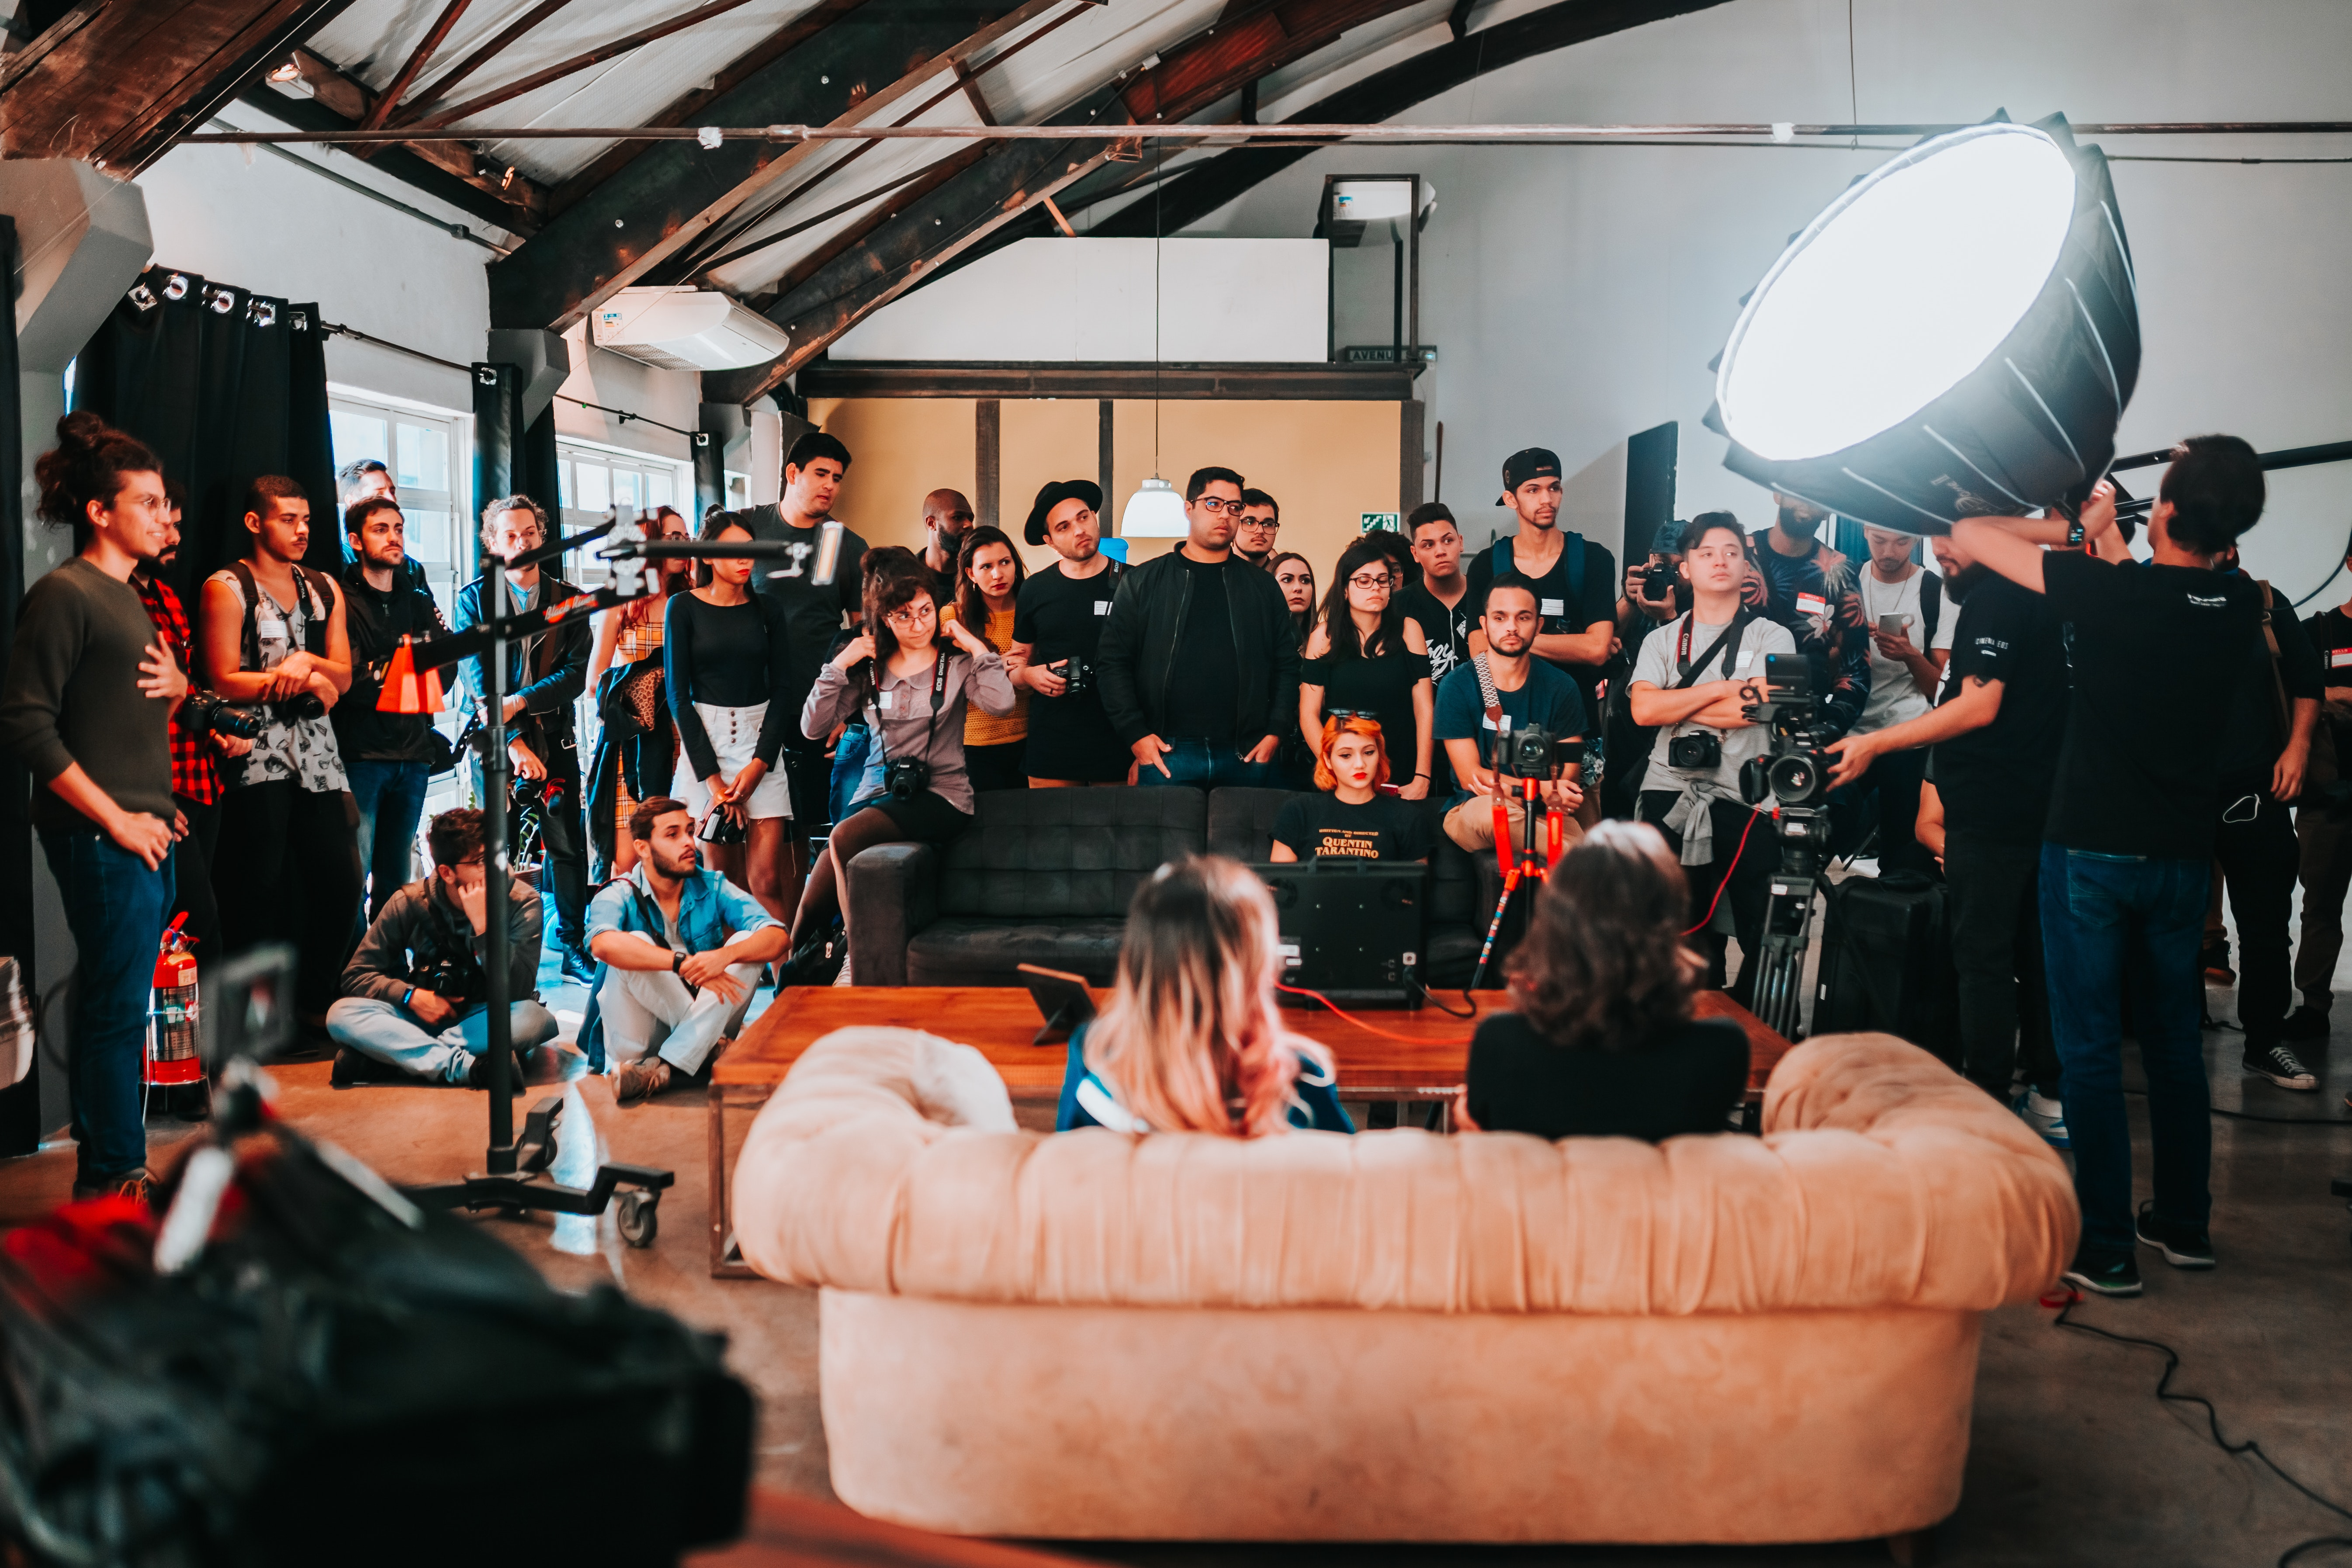 An event or interview with people sitting on a couch and attendees all around listening.